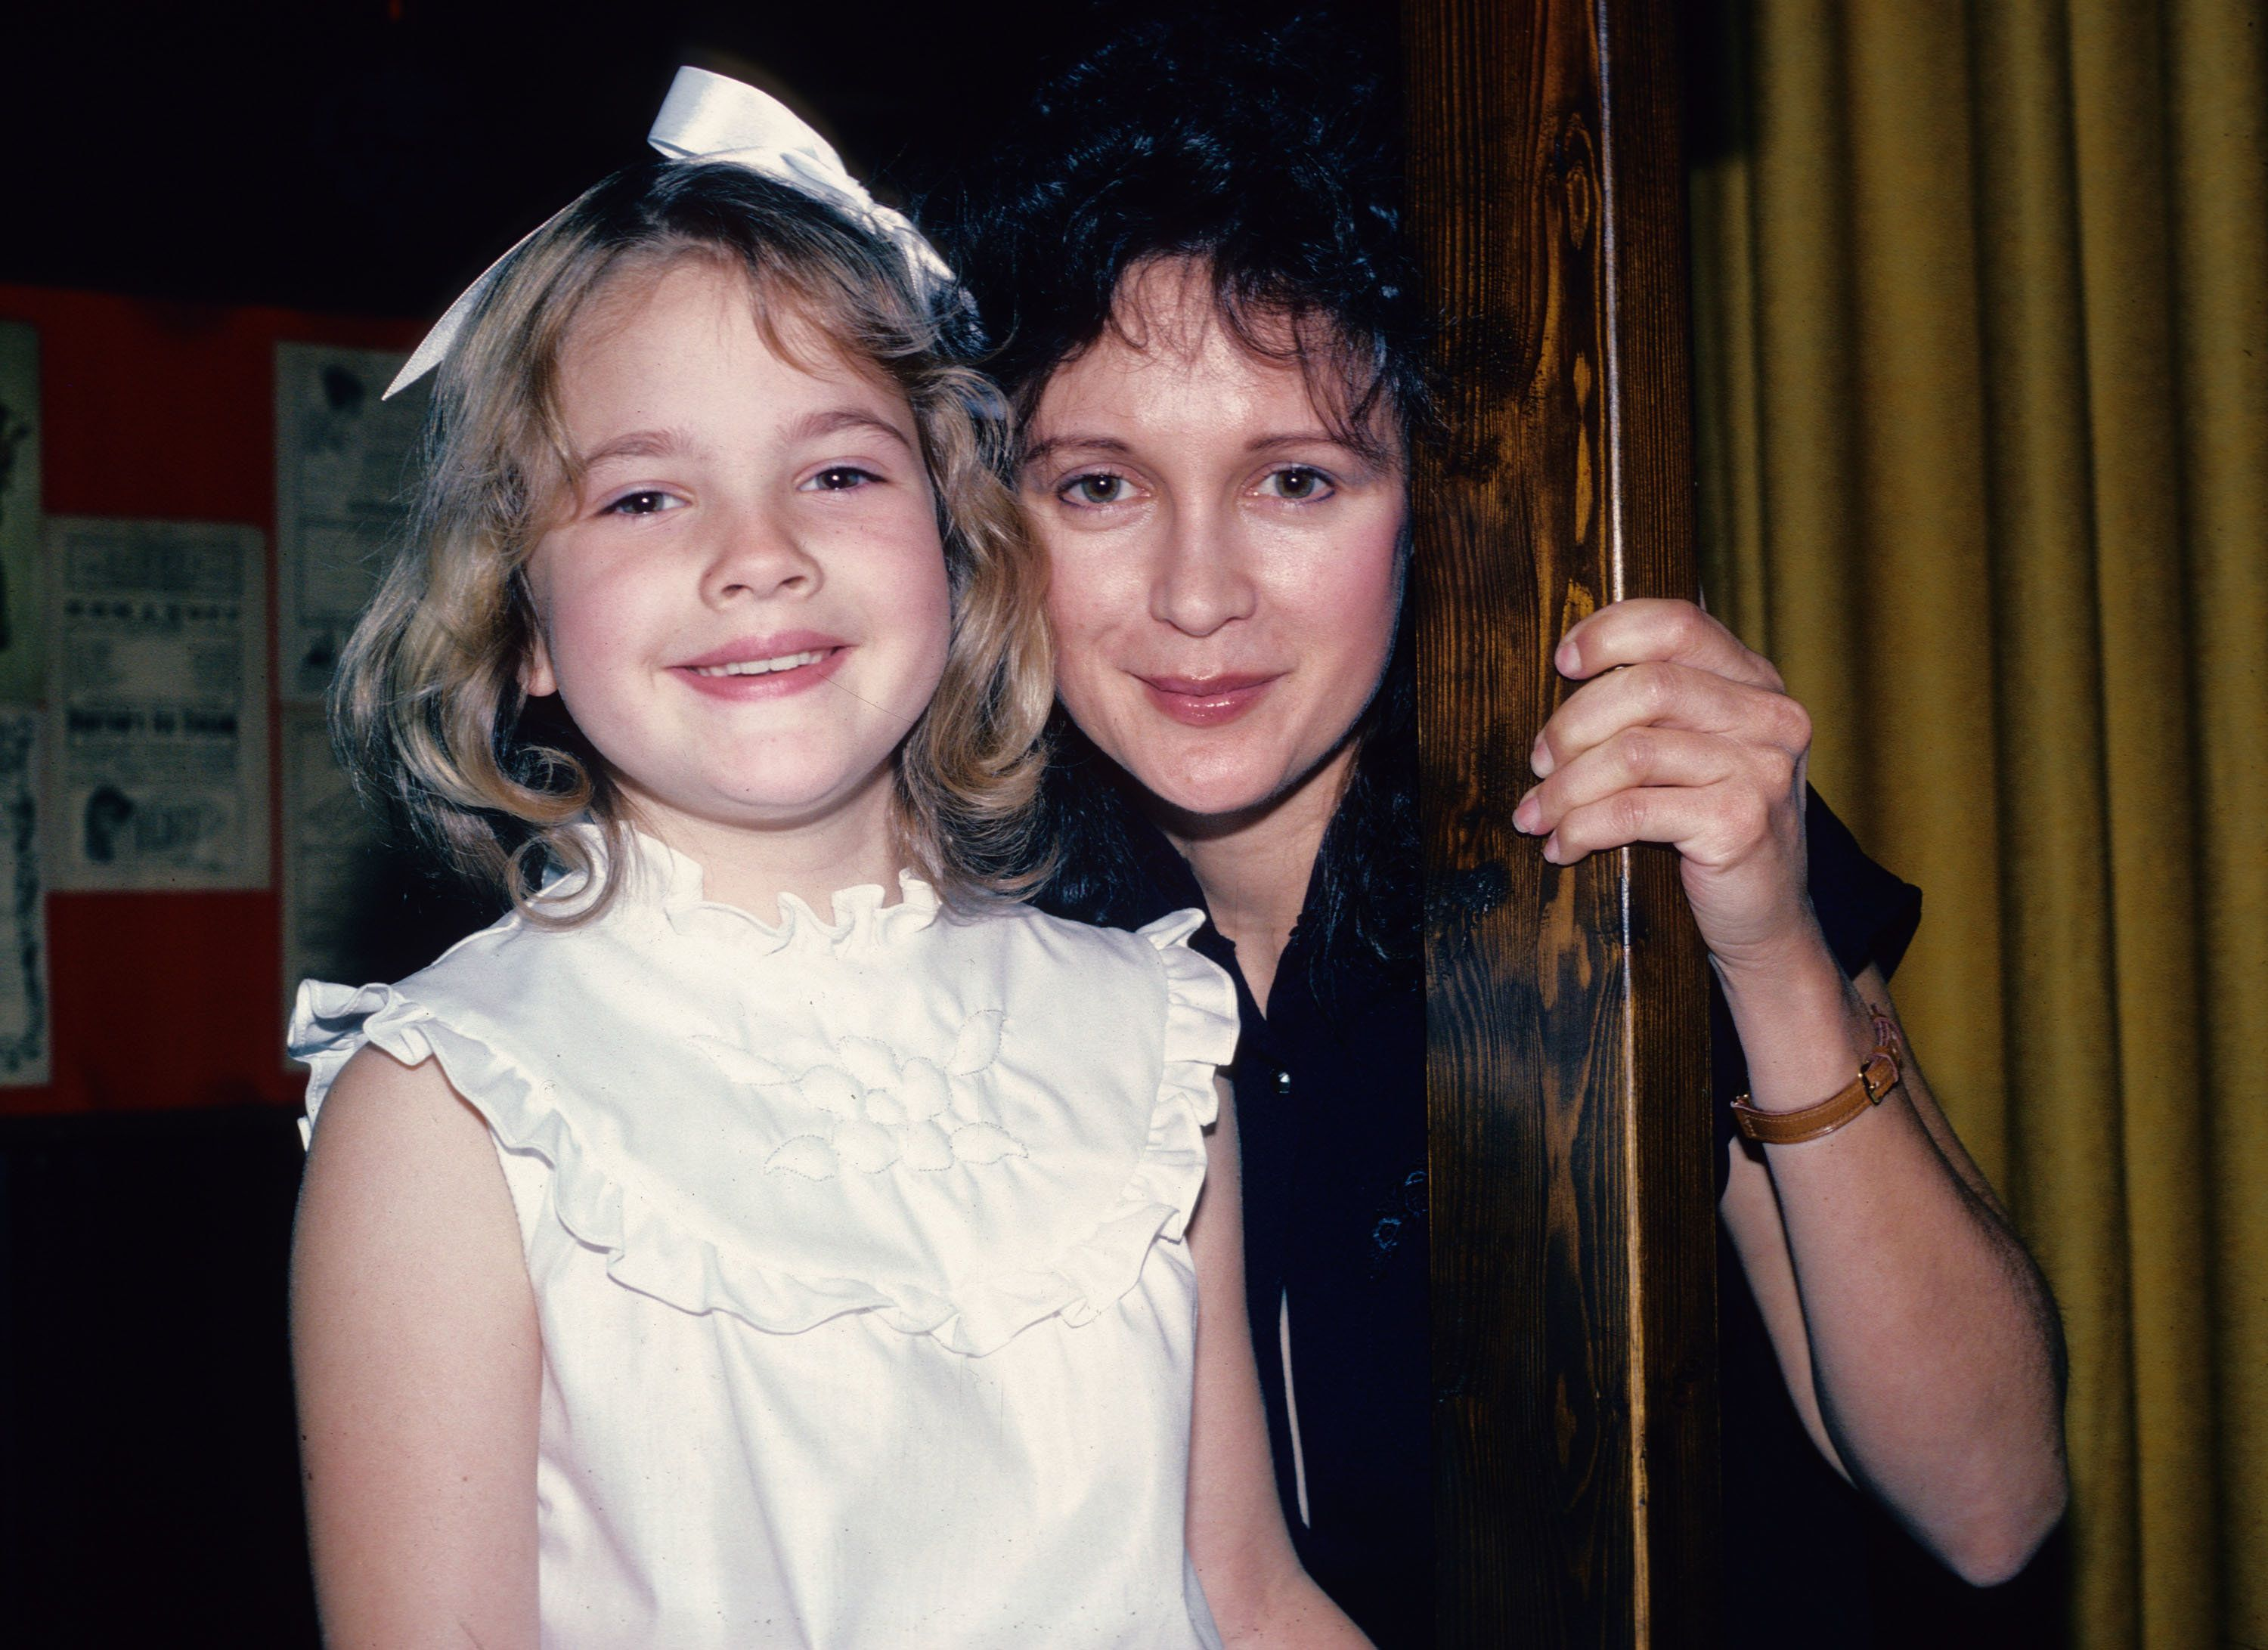 NEW YORK - JUNE 8: 'ET' star Drew Barrymore poses for a photograph June 8, 1982 with her mother Jaid Barrymore in New York City. (Photo by Yvonne Hemsey/Getty Images)